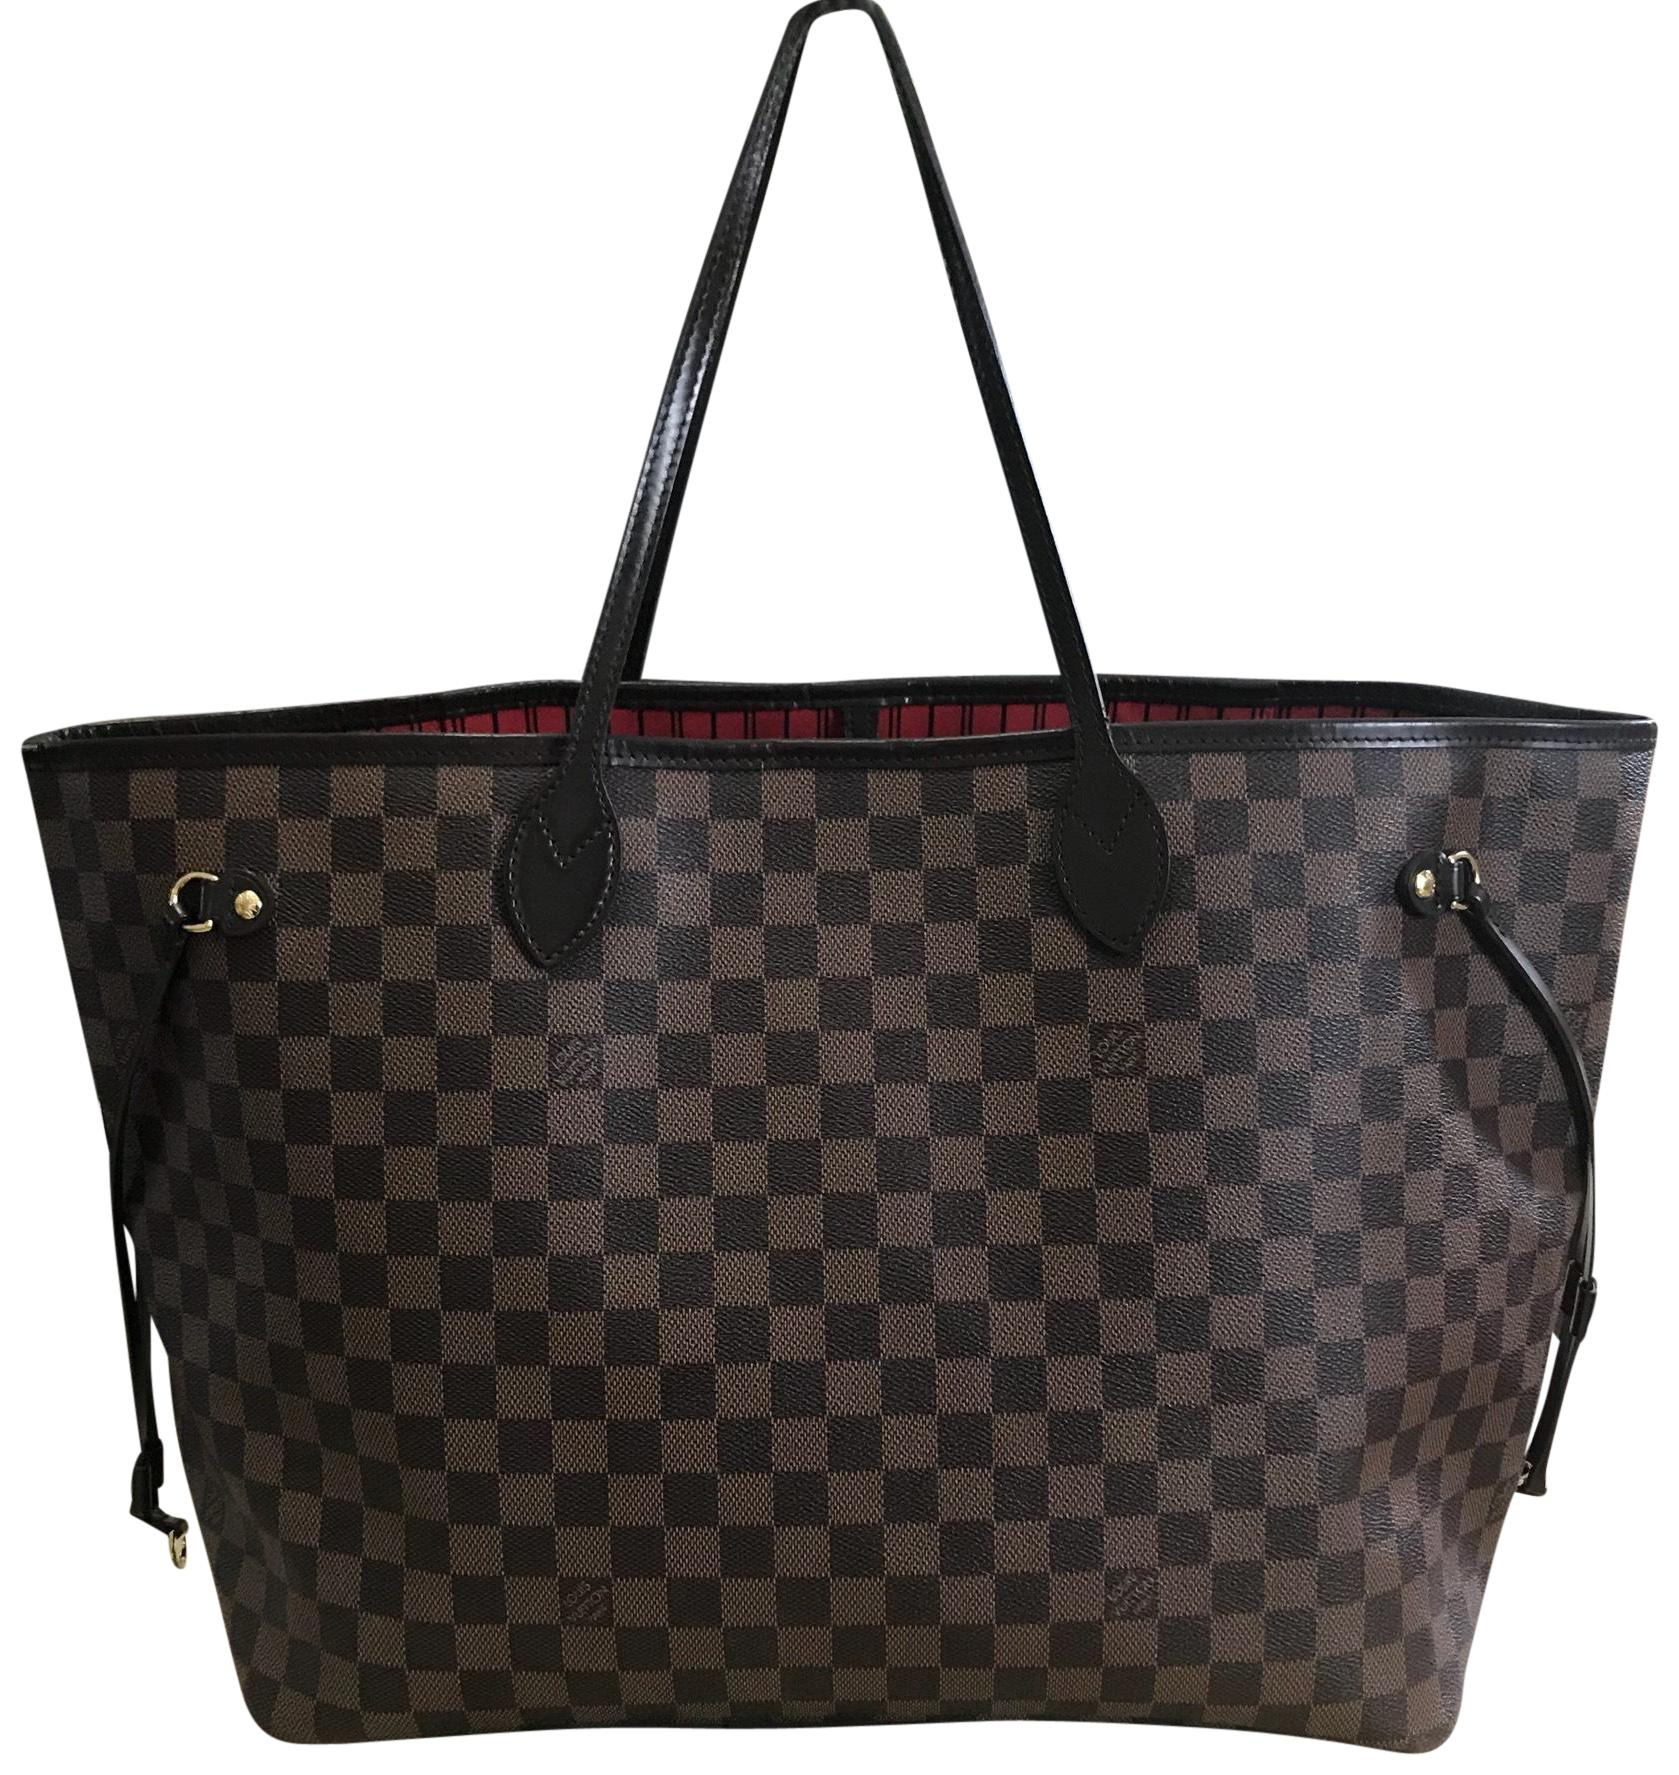 Pre-owned - Tote W leather tote Louis Vuitton jVhLsm9Xd